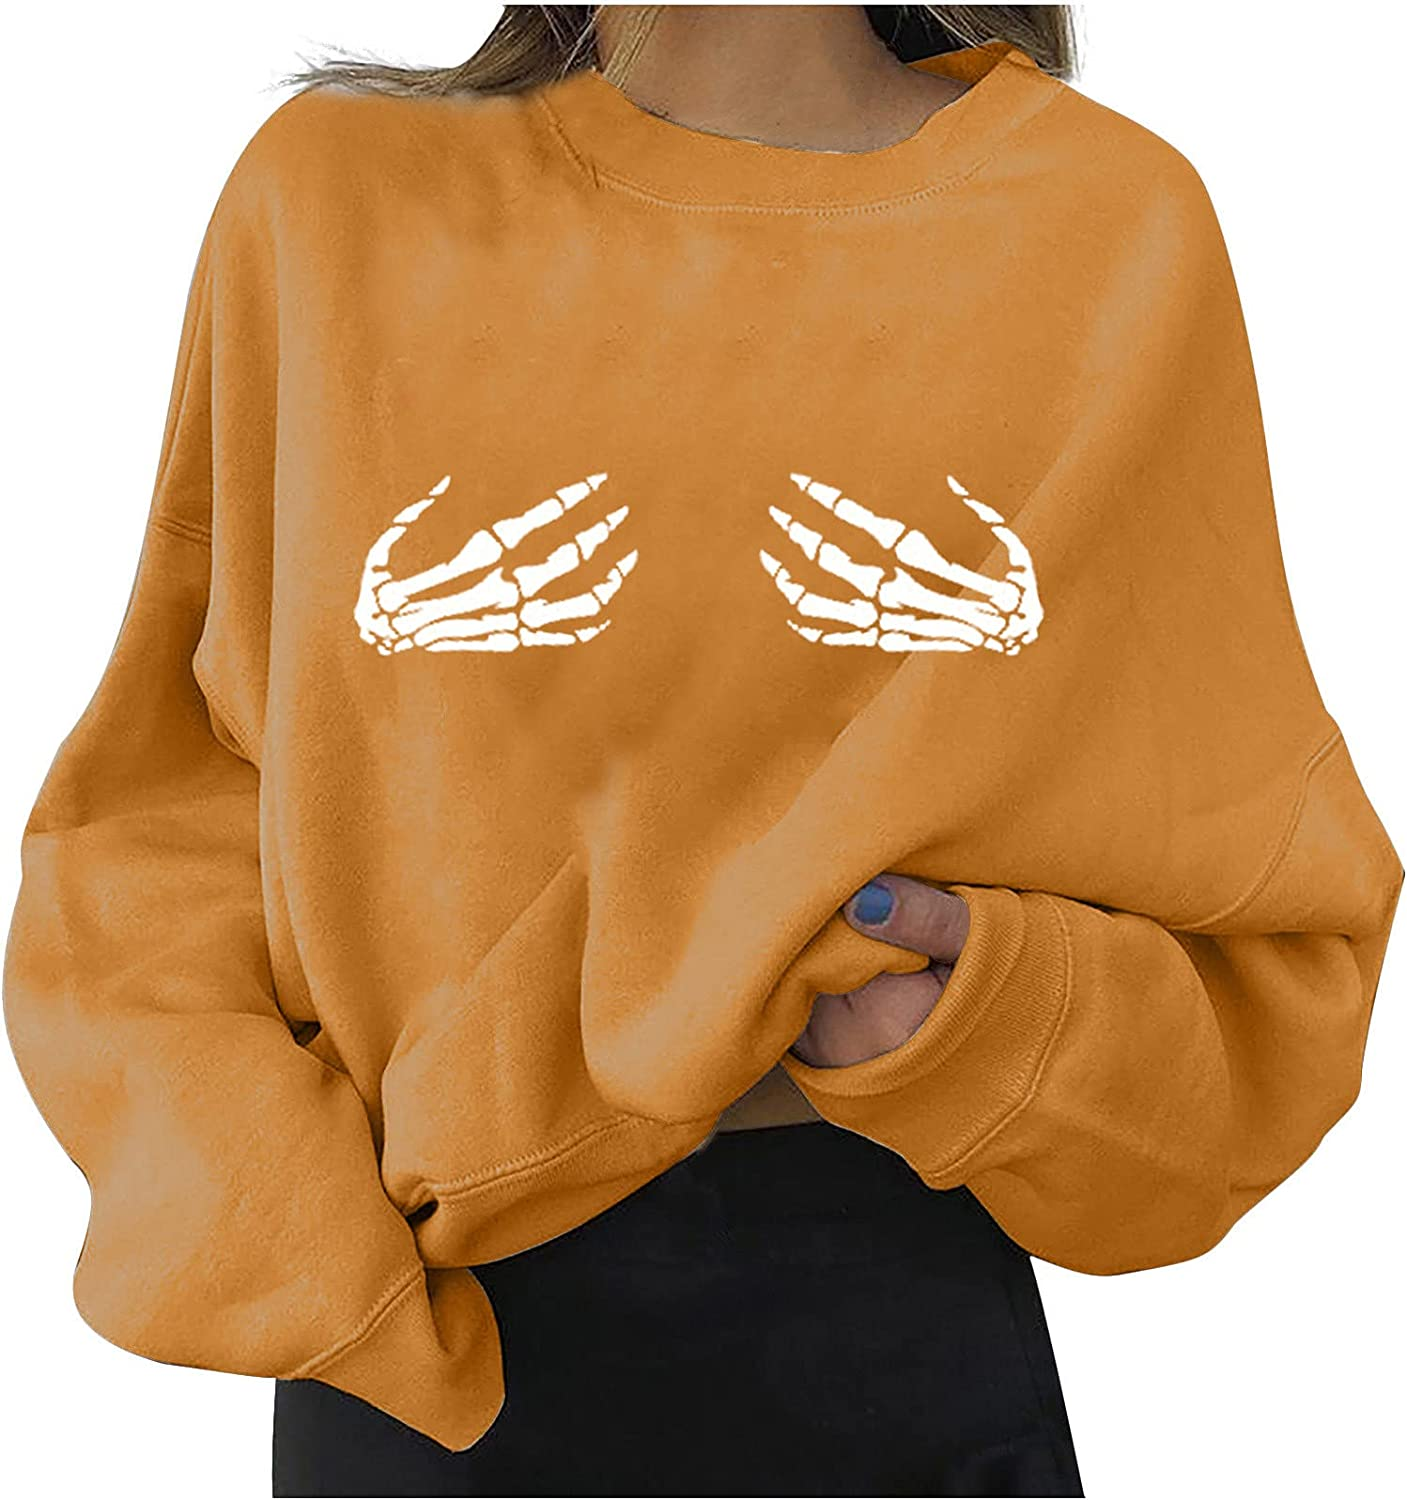 Fashion Pullover for Women's Blouse Tops Casual Long Sleeve Halloween Printed Ladies Tee Shirt Sweatshirts